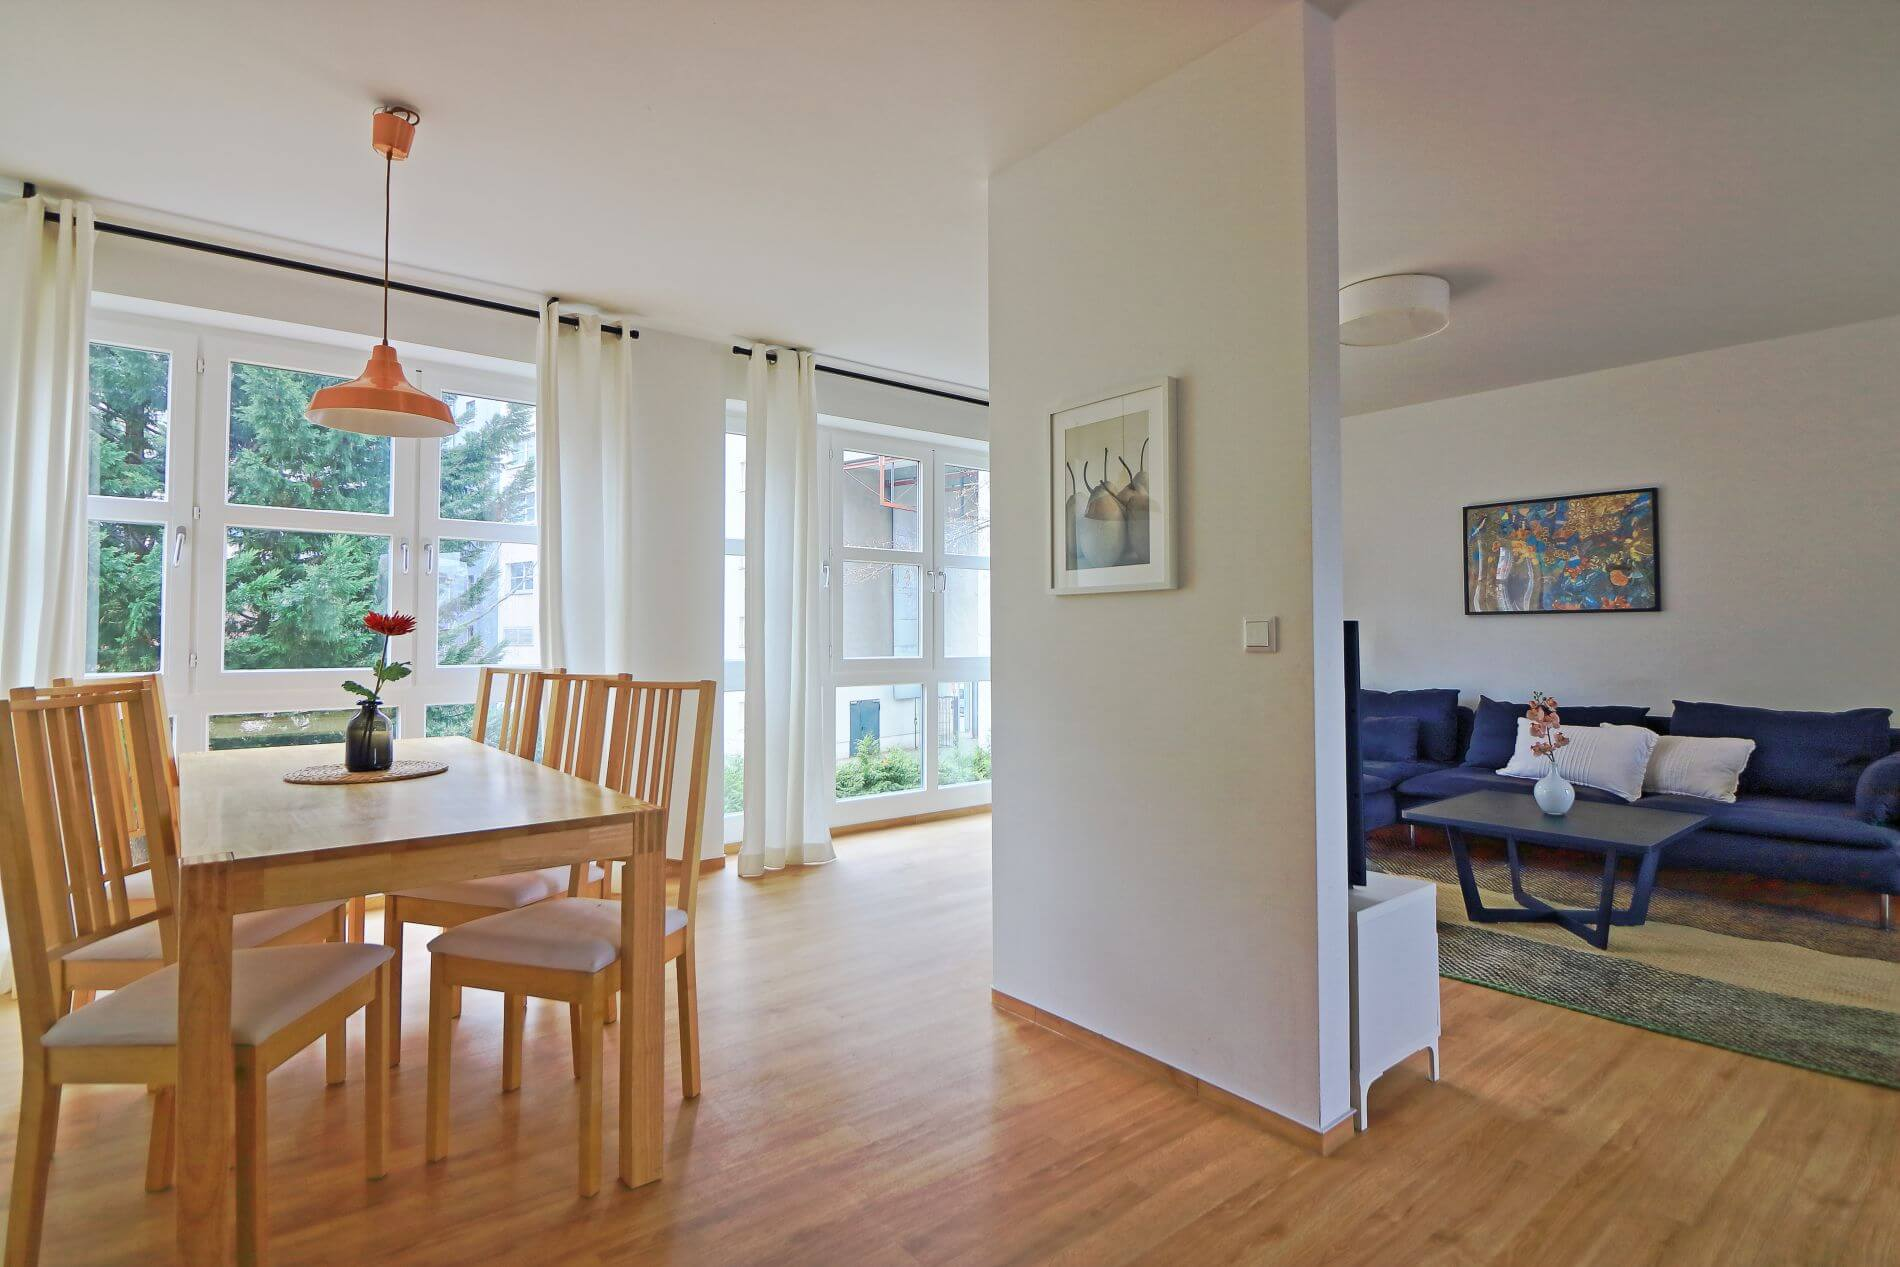 Furnished 3 room rental near Checkpoint Charlie